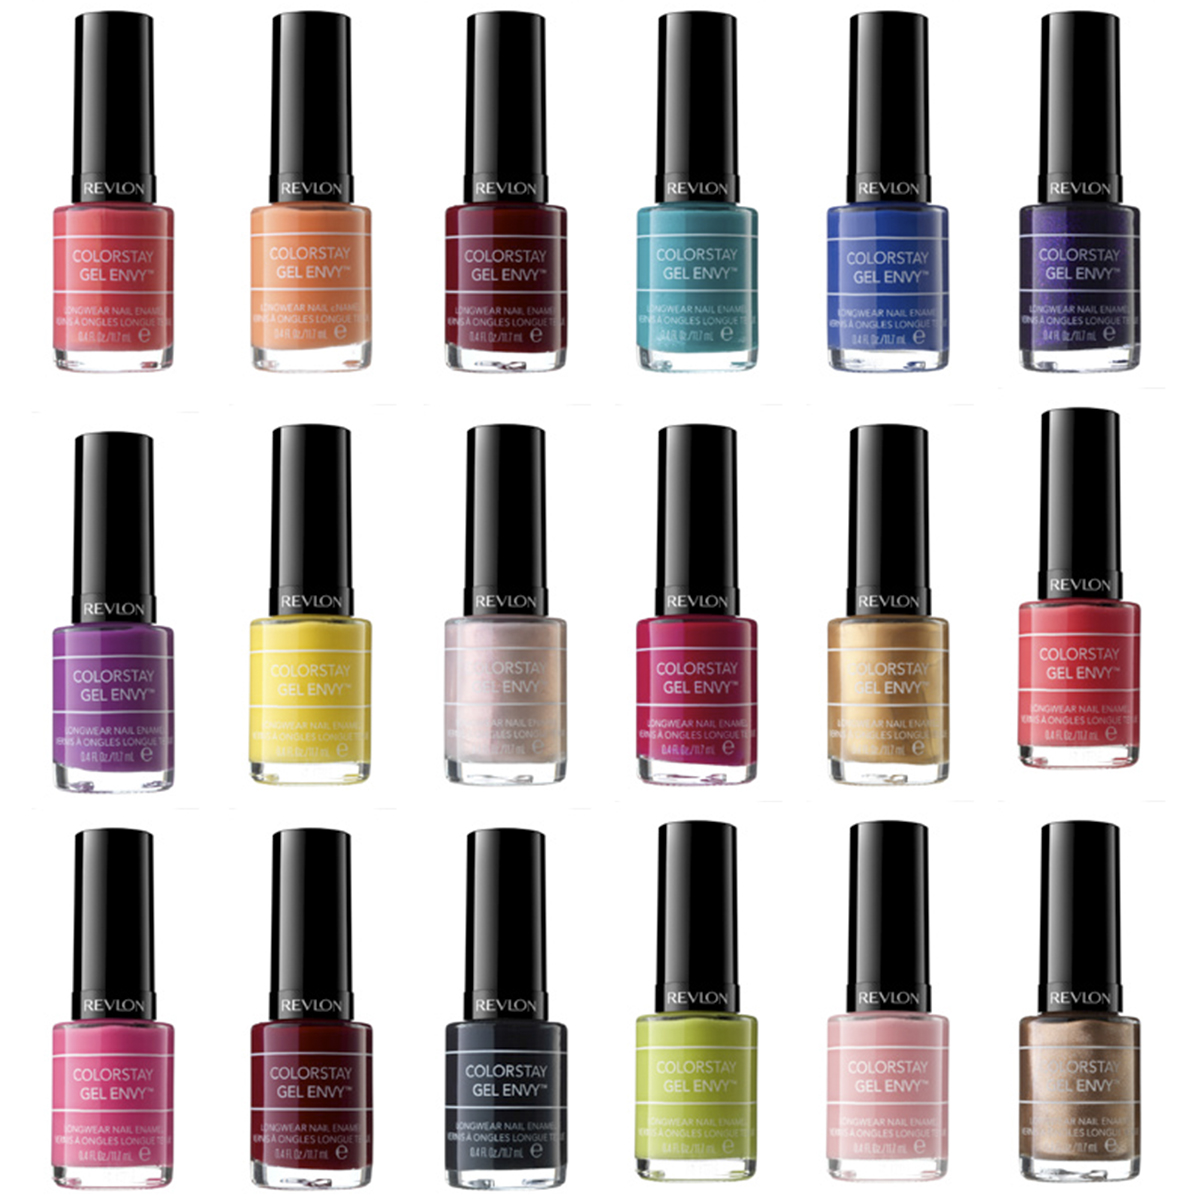 Most Popular Nail Polish Colors: Spotted New Revlon Colorstay Gel Envy Longwear Nail